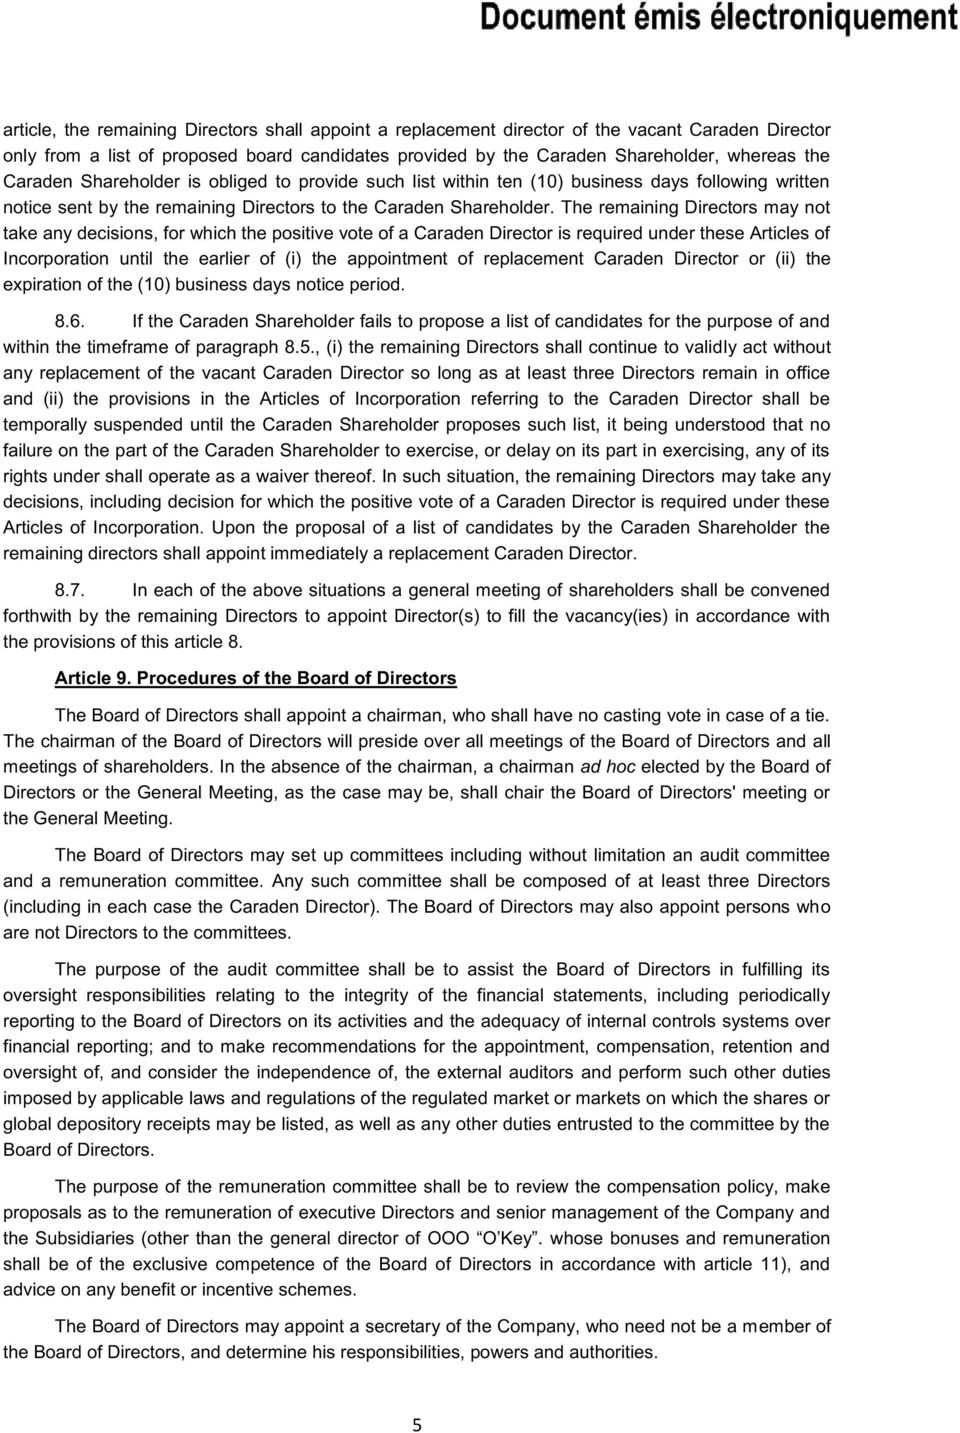 The remaining Directors may not take any decisions, for which the positive vote of a Caraden Director is required under these Articles of Incorporation until the earlier of (i) the appointment of